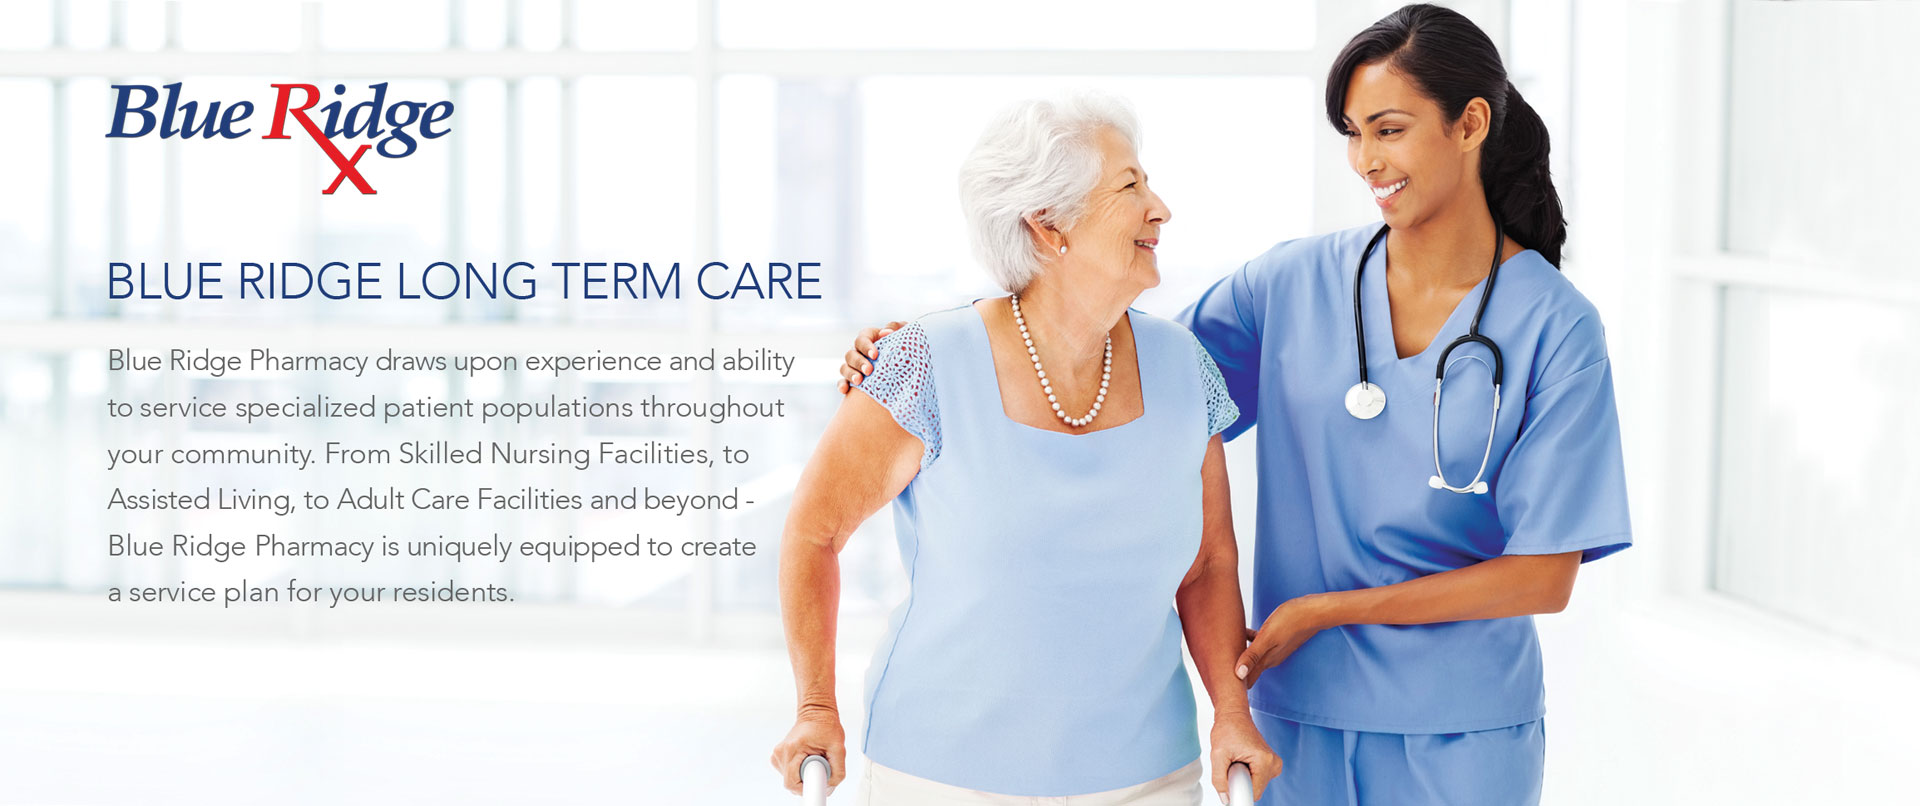 Blue Ridge Long Term Care